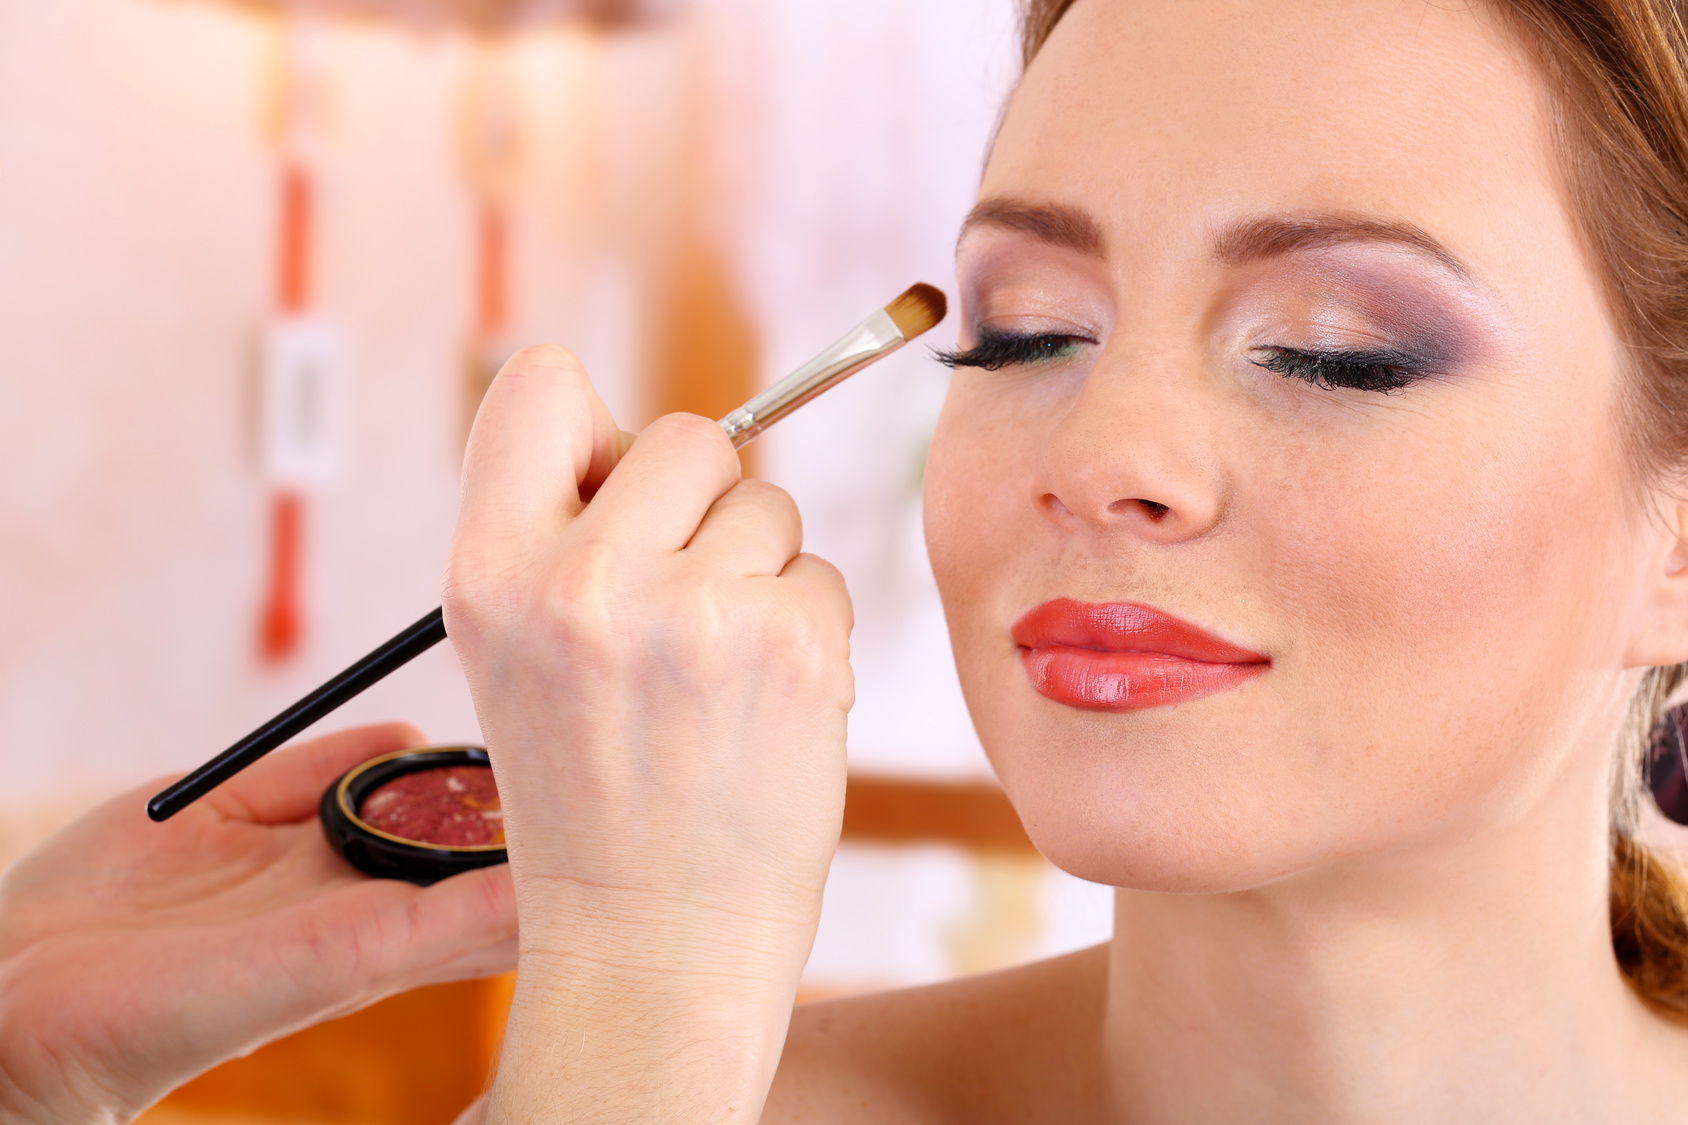 makeup application Makeup application party makeup about 60 minutes $100 - $125 have somewhere fabulous to go get dolled up by the best and have your makeup looking flawless in an hour.